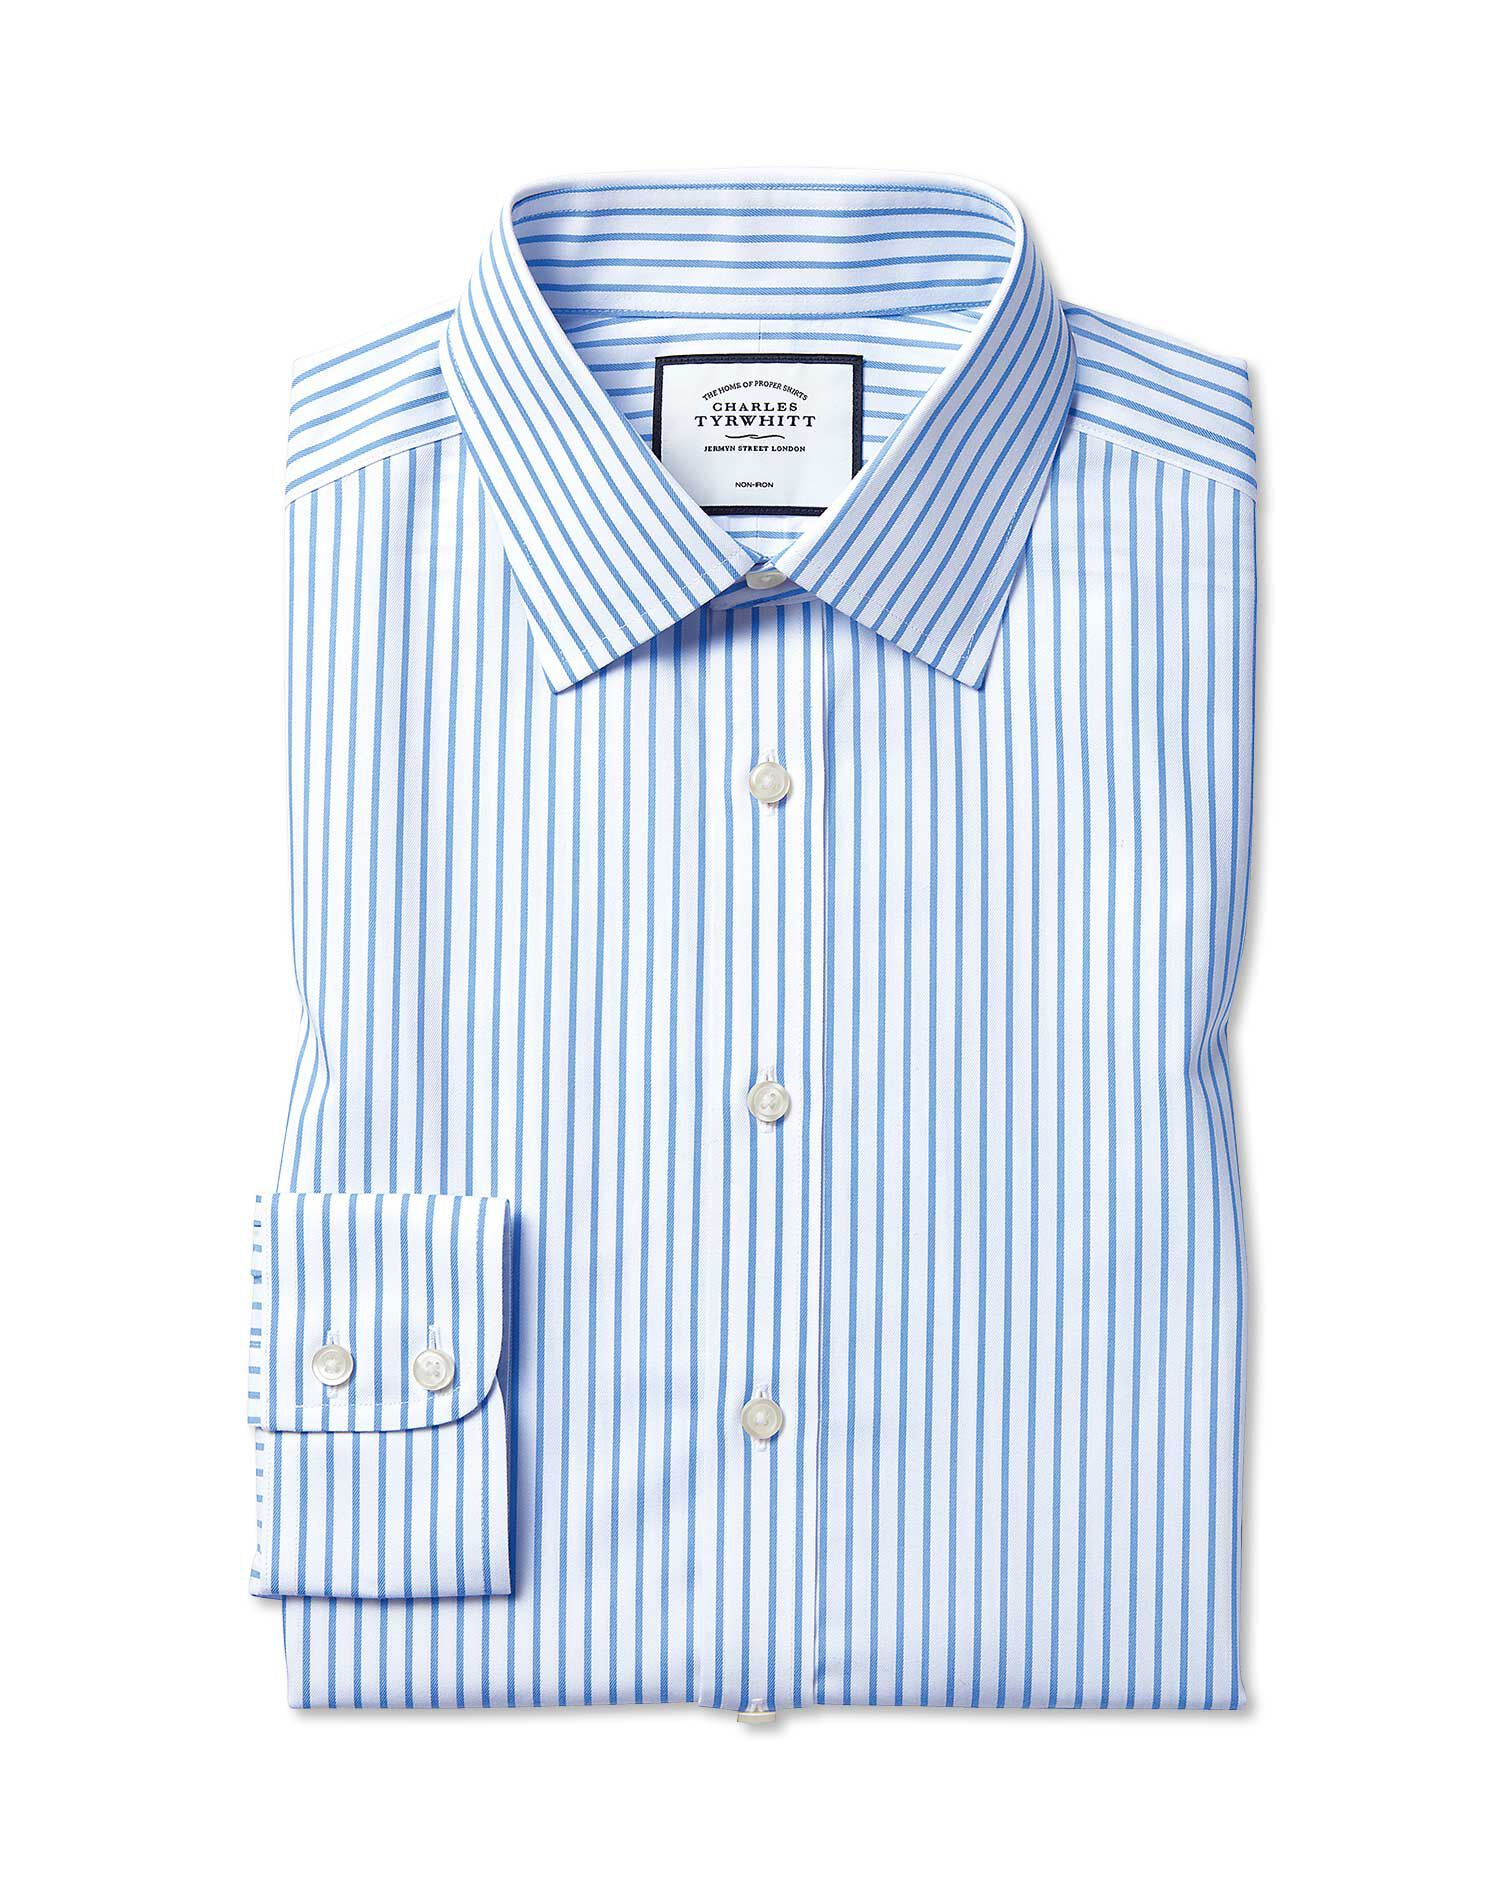 Extra Slim Fit Non-Iron Twill White and Sky Blue Stripe Cotton Formal Shirt Single Cuff Size 15.5/32